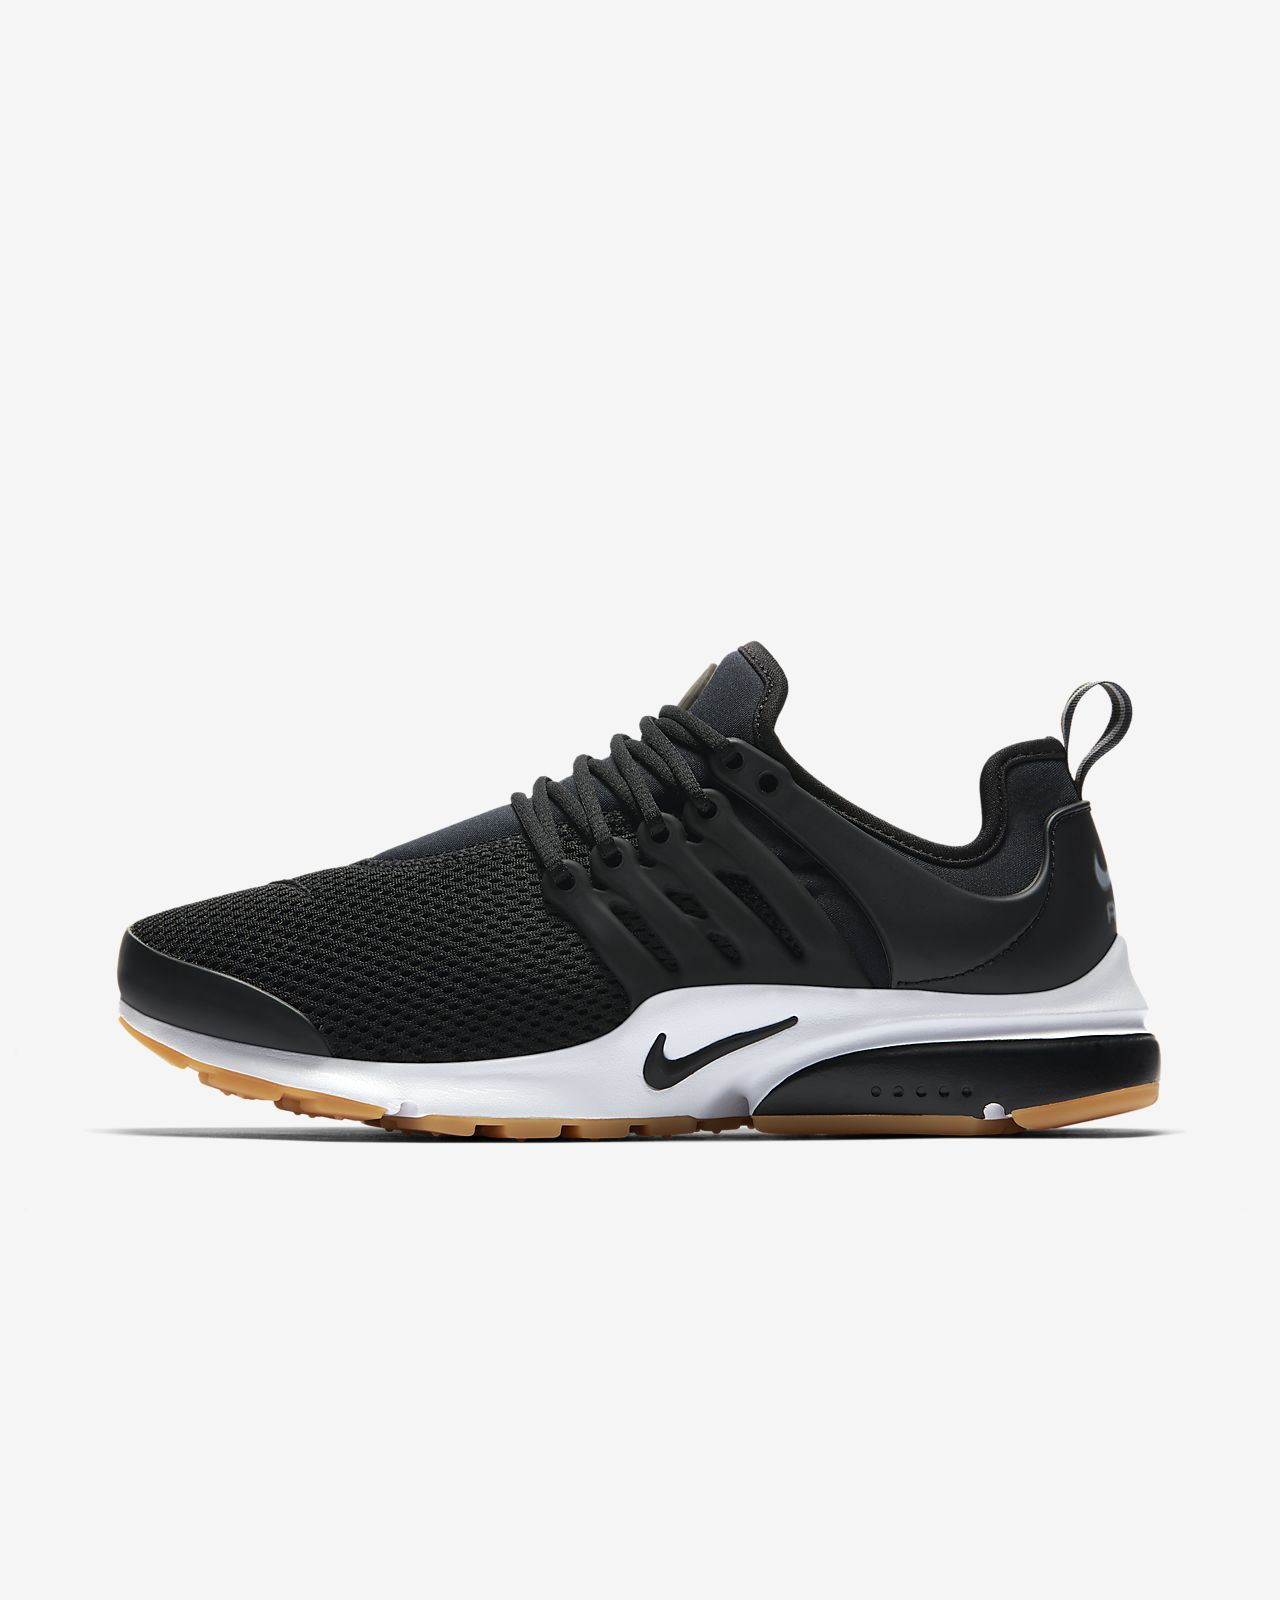 reputable site f0ea2 70846 Women s Shoe. Nike Air Presto